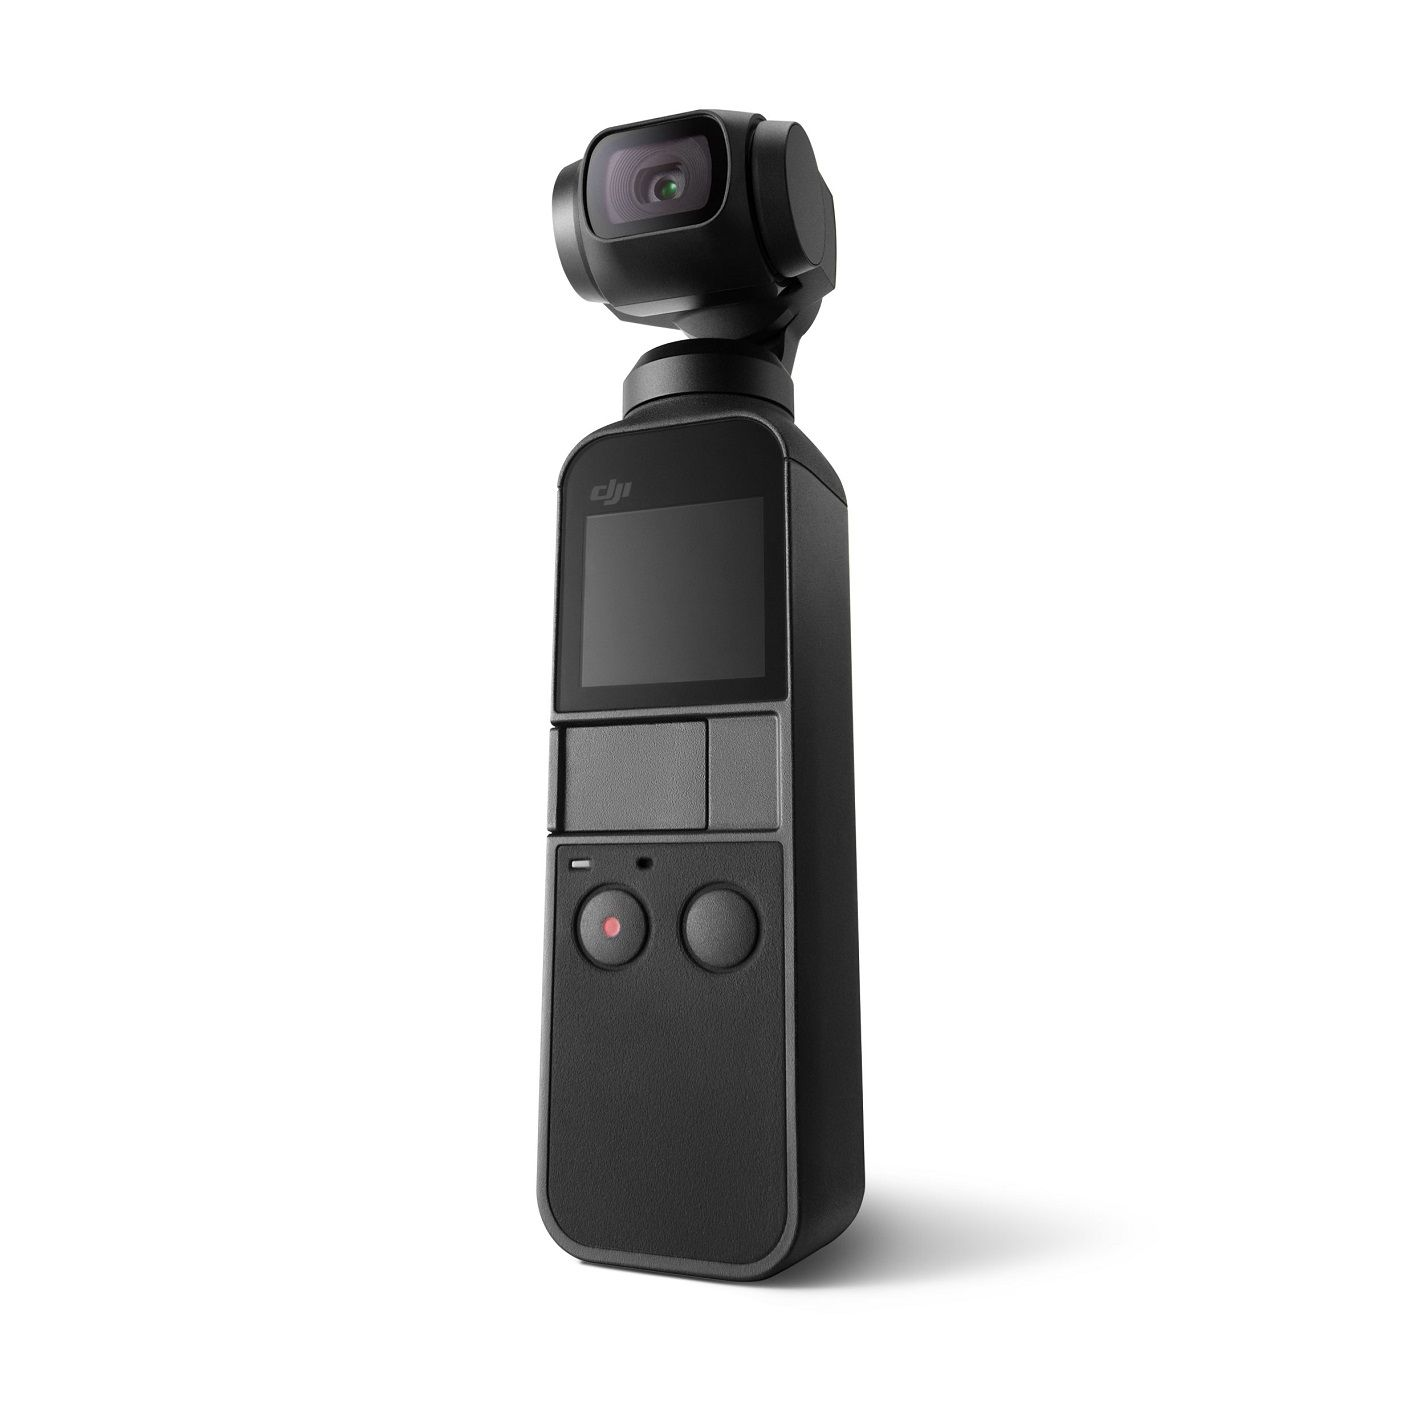 Camera video sport DJI Osmo Pocket, stabilizare gimbal, negru - photo 2